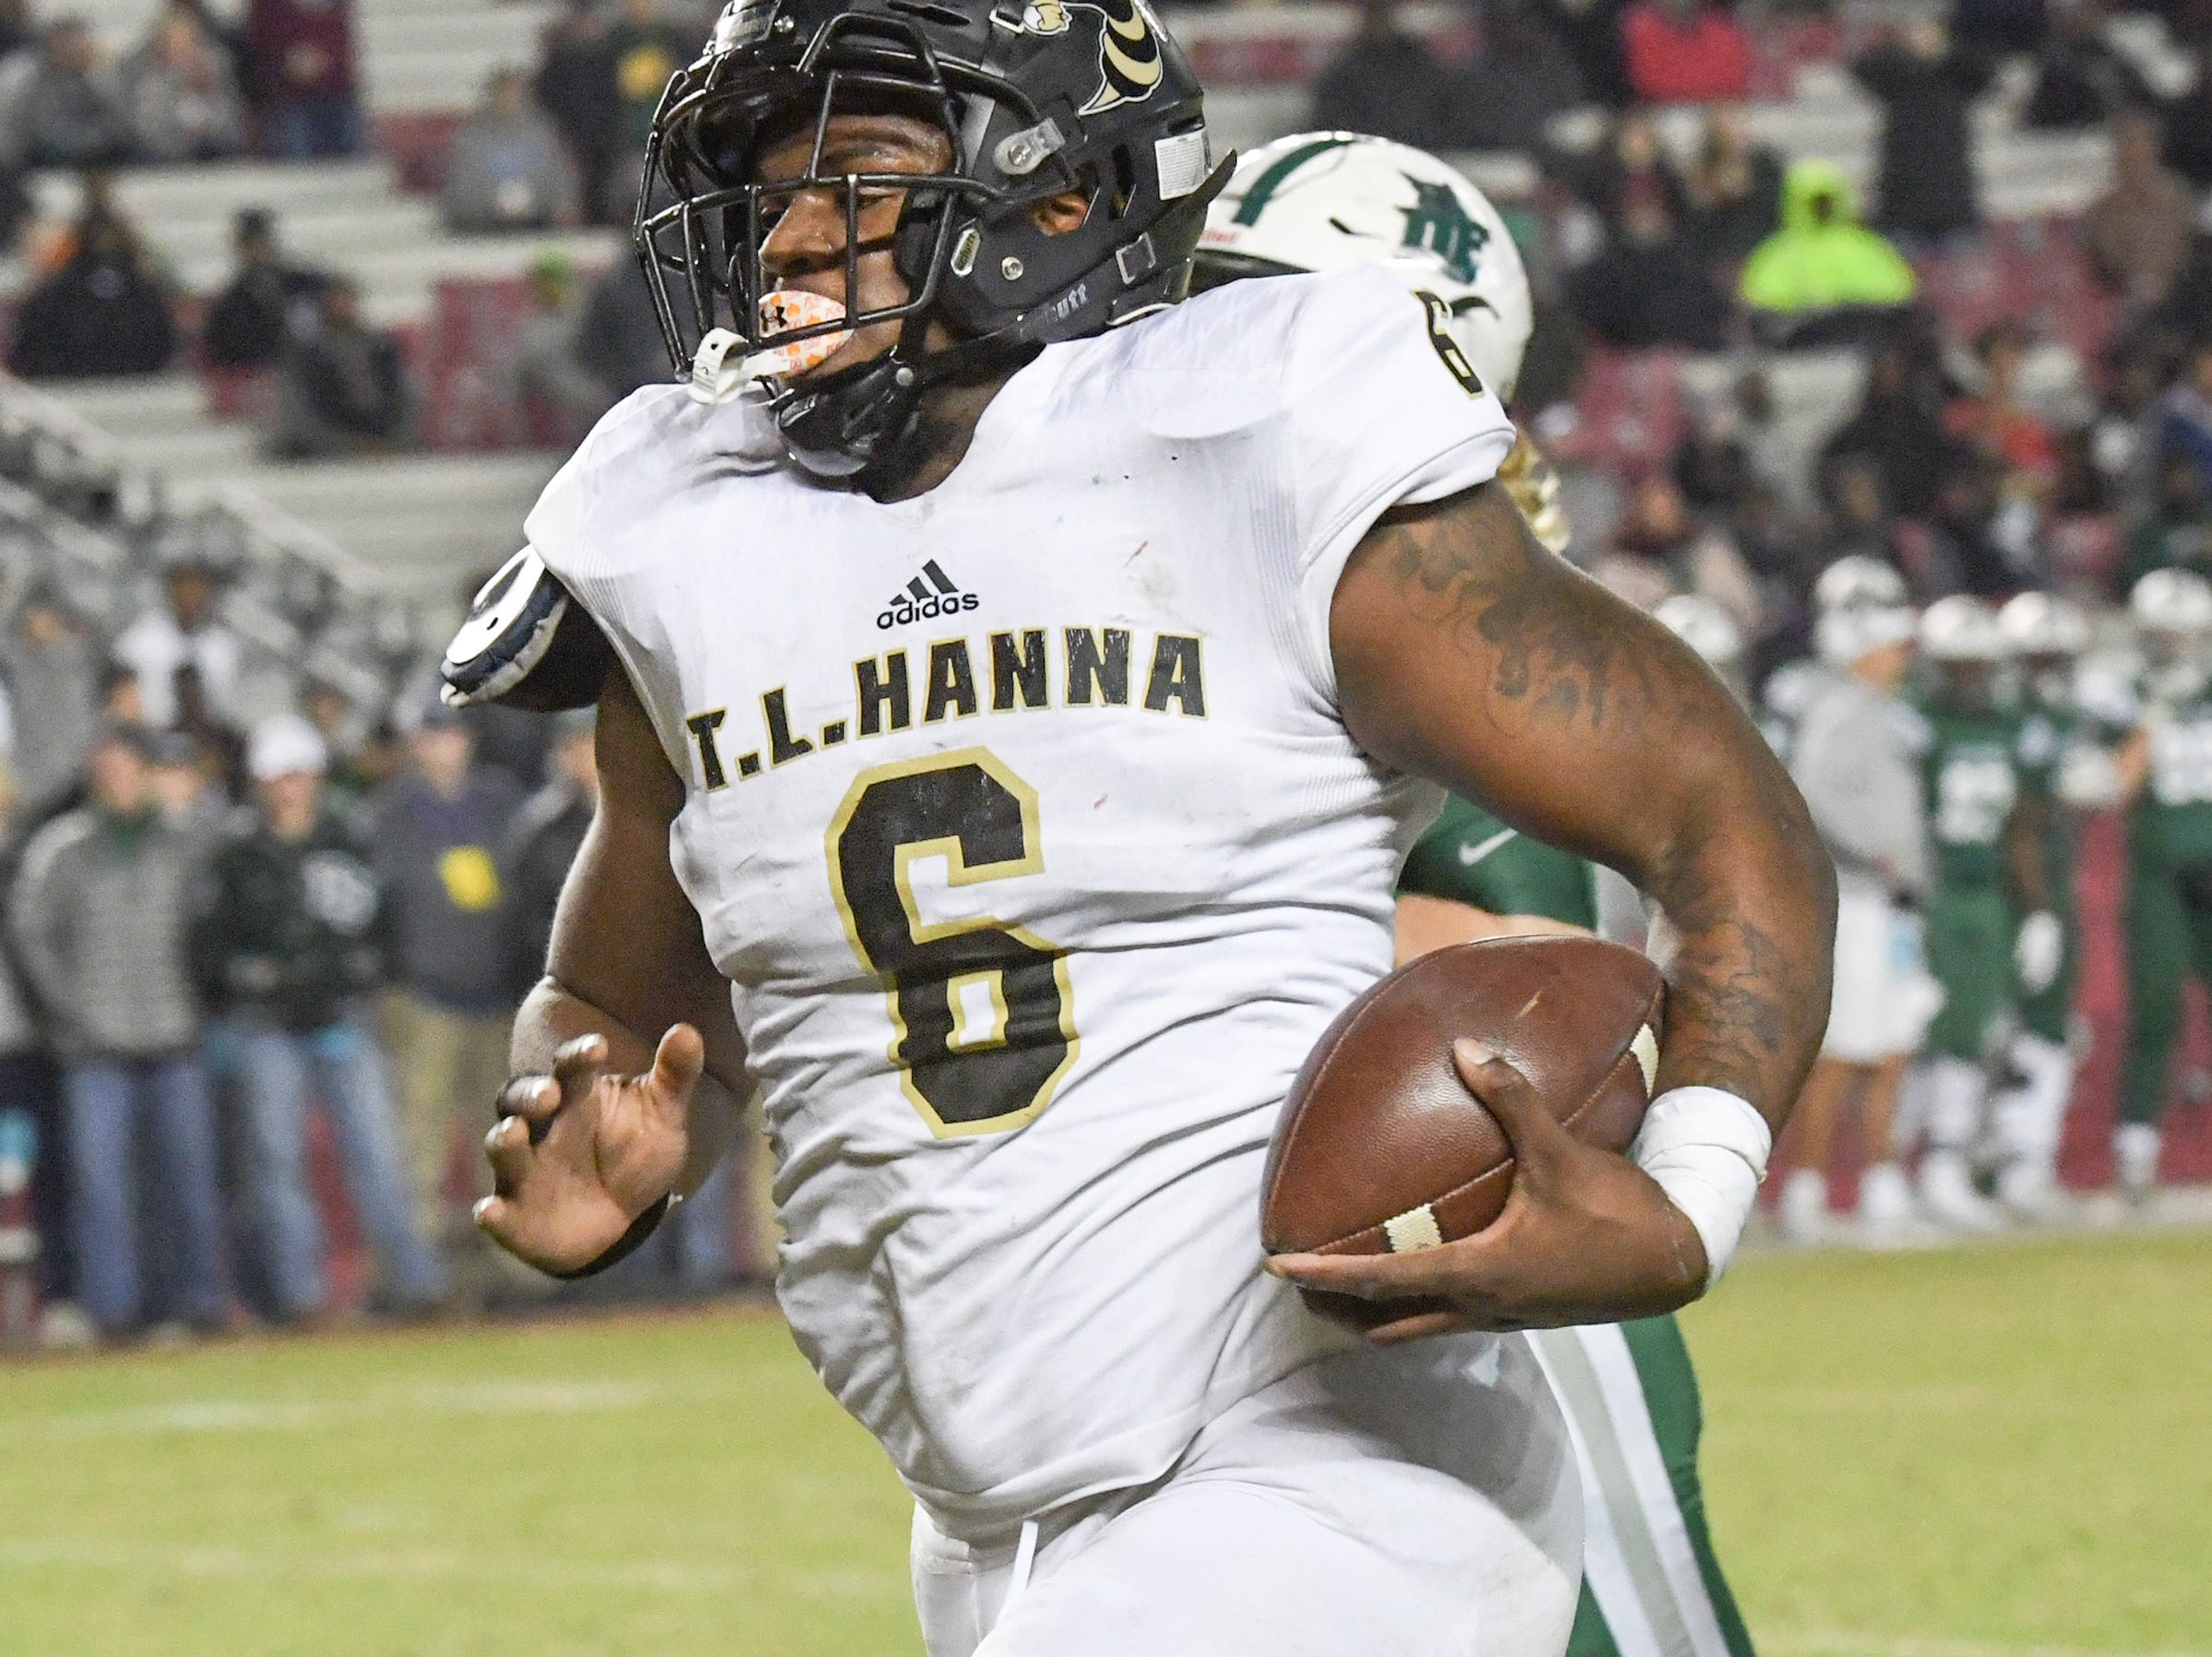 TL Hanna senior Zacch Pickens (6) returns an interception for a touchdown against Dutch Fork High School during the first quarter of the Class AAAAA state championship game at Williams-Brice Stadium in Columbia Saturday, December 8, 2018.